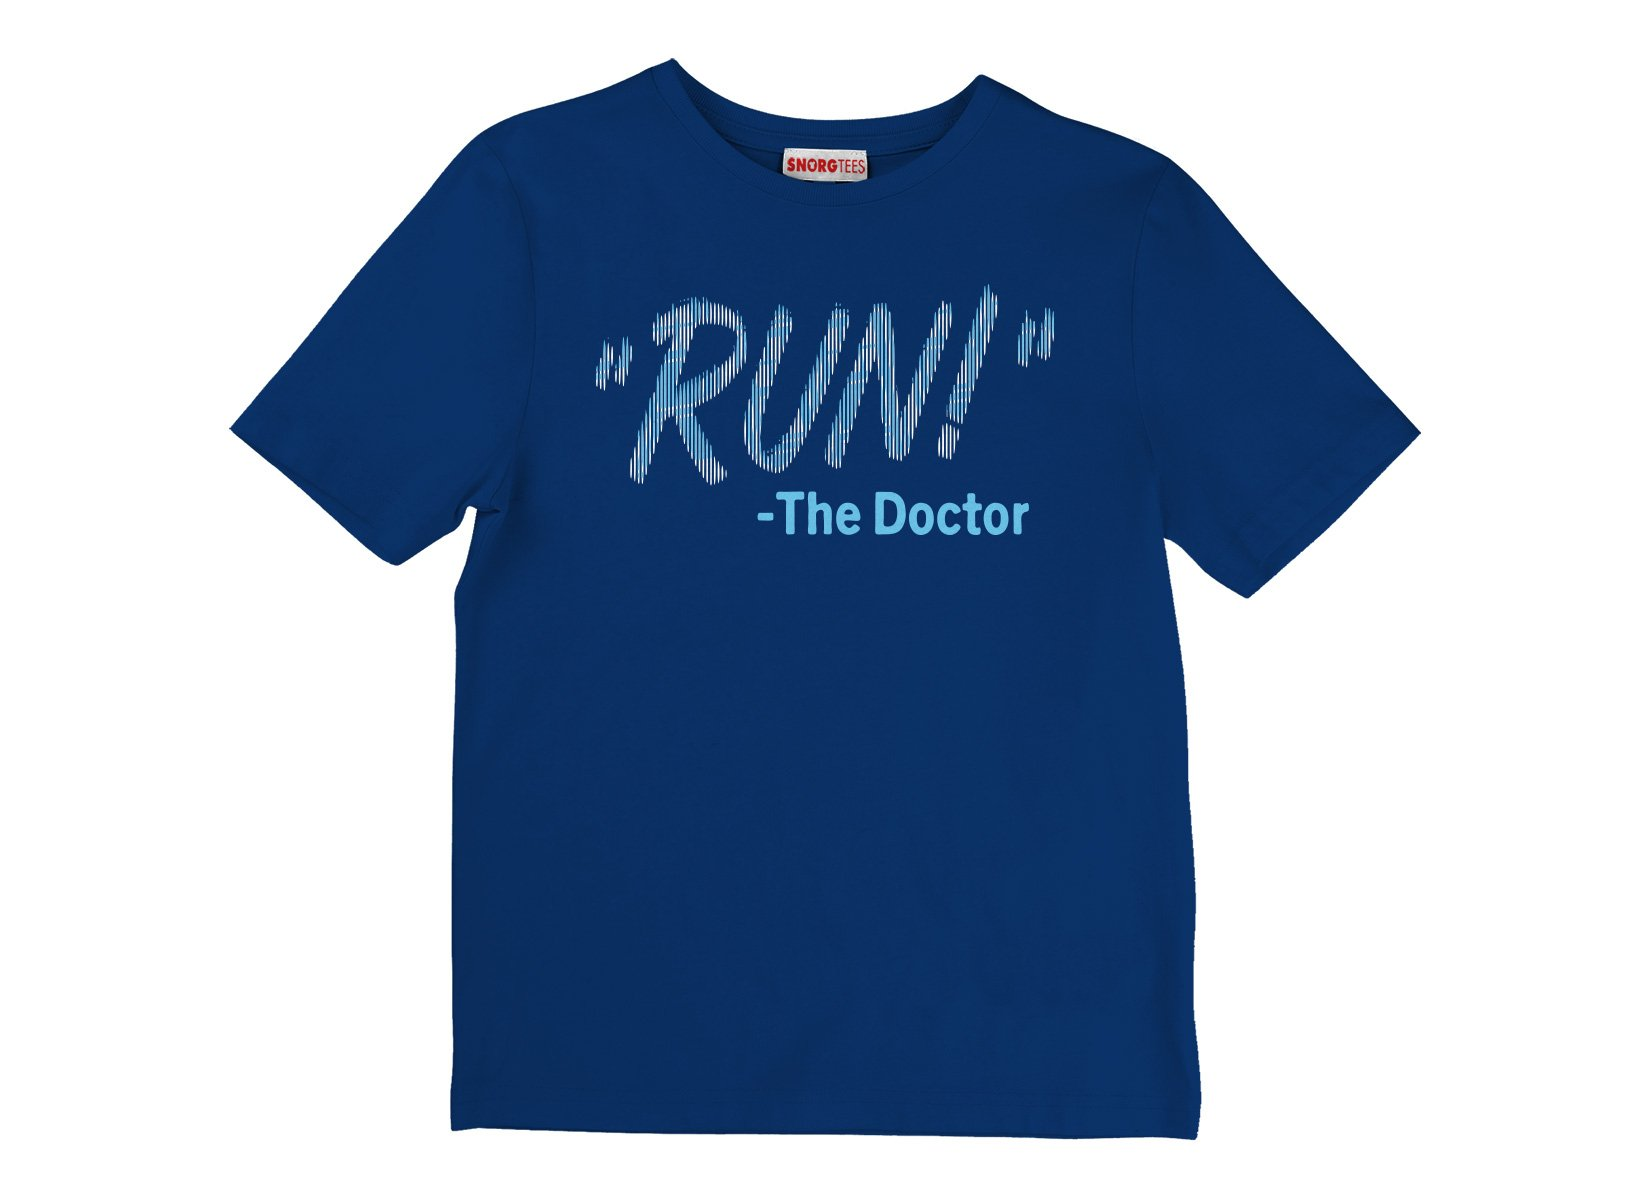 RUN! The Doctor on Kids T-Shirt